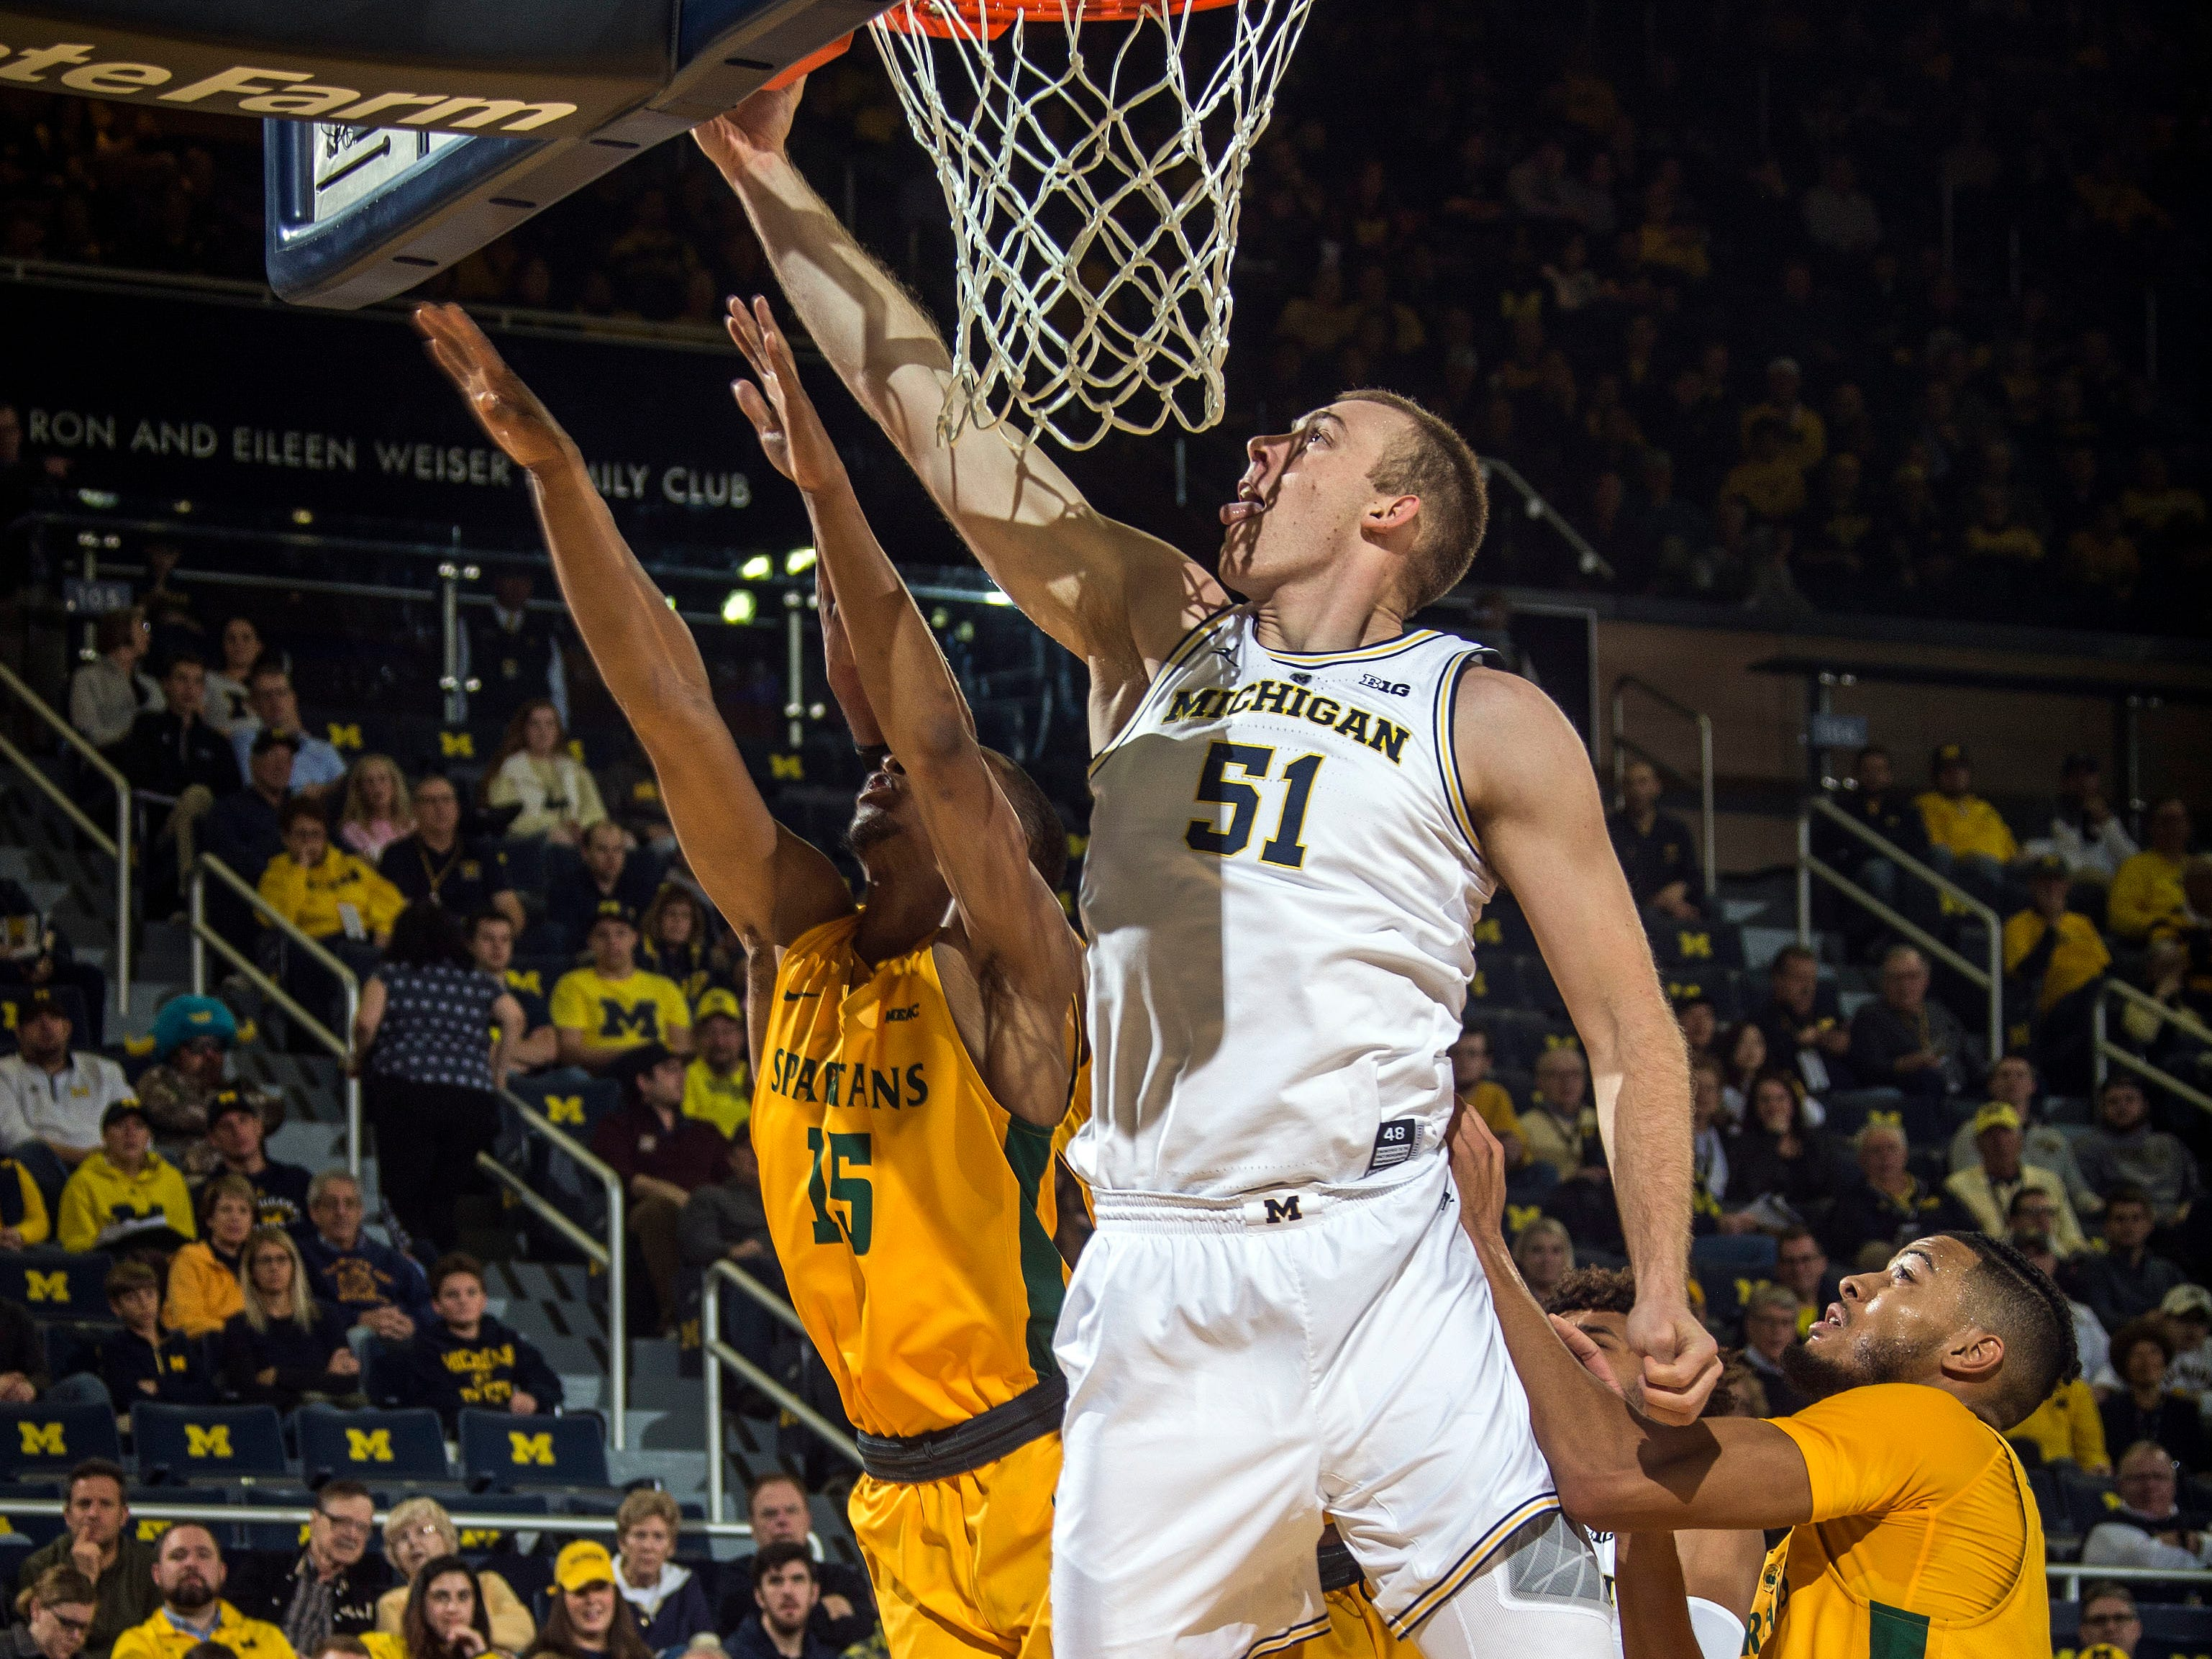 Michigan forward Austin Davis (51) goes to the basket, defended by Norfolk State guard C.J. Kelly (15) in the first half of an NCAA college basketball game at Crisler Center in Ann Arbor, Mich., Tuesday, Nov. 6, 2018.